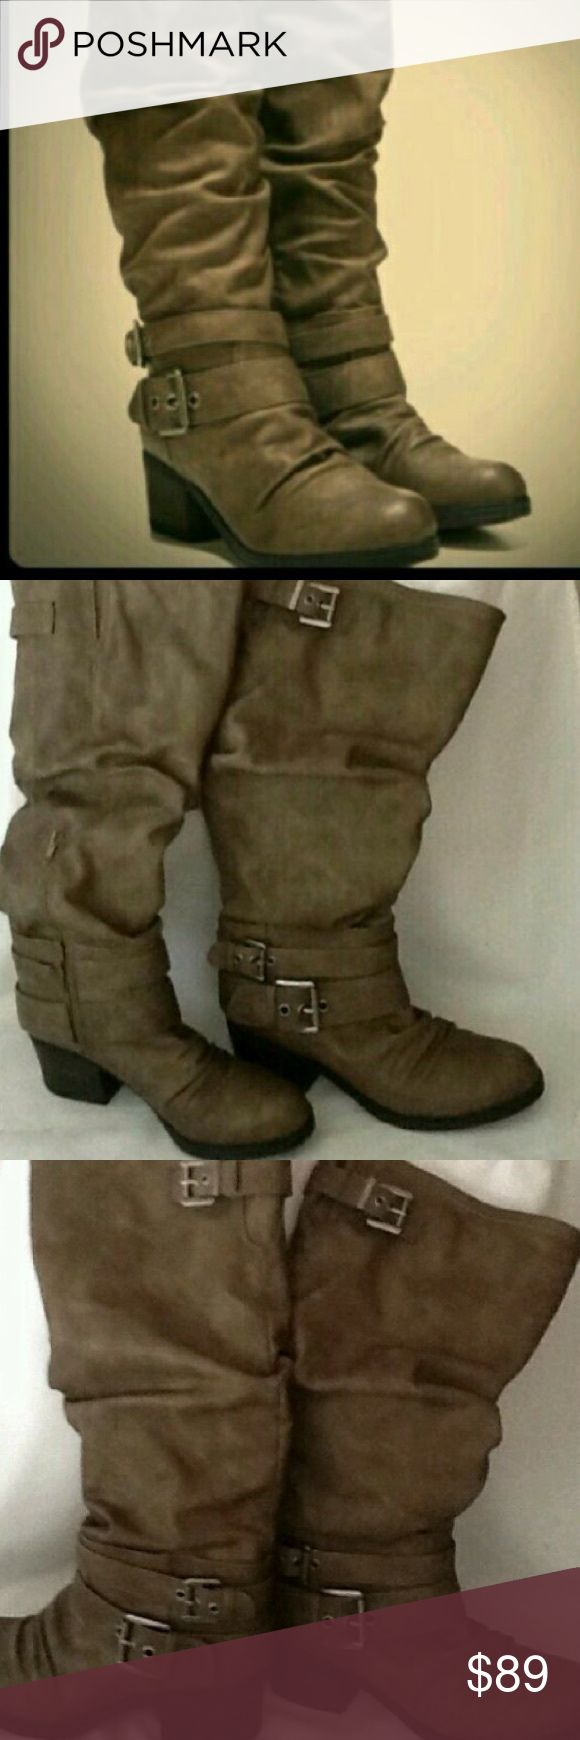 Size 7.5 Carlos Santa Claudia style boots Tan with a brushed gray color running through. Can look this up online also style name Claudia. Zip up side and gorgeous silver hardware. I do not have box. Slip resistant bottoms. Beautiful condition. Only worn a few times. No flaws like new. Carlos Santana Shoes Combat & Moto Boots